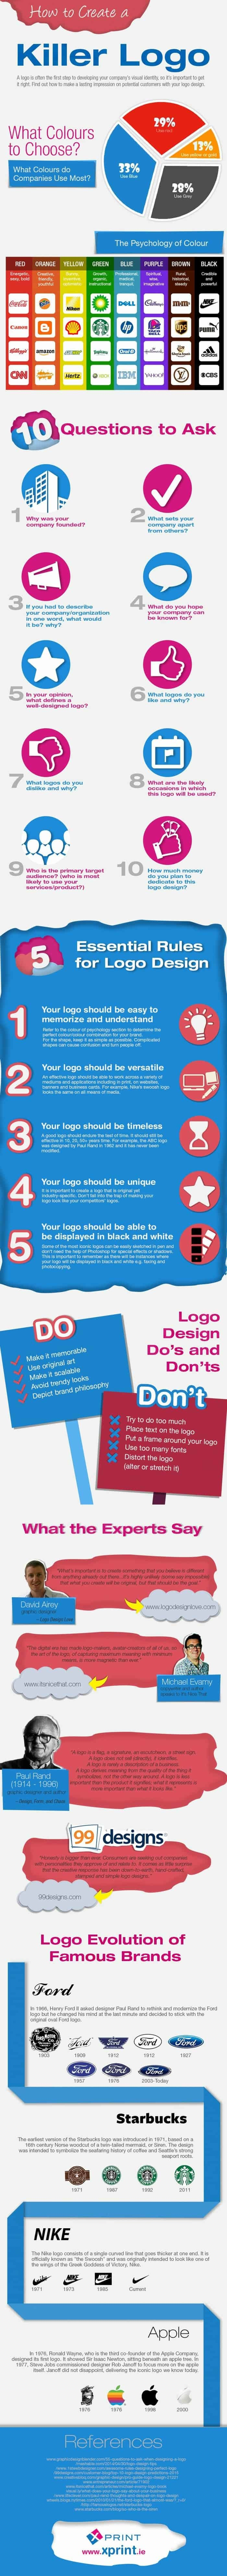 Infographic on logos